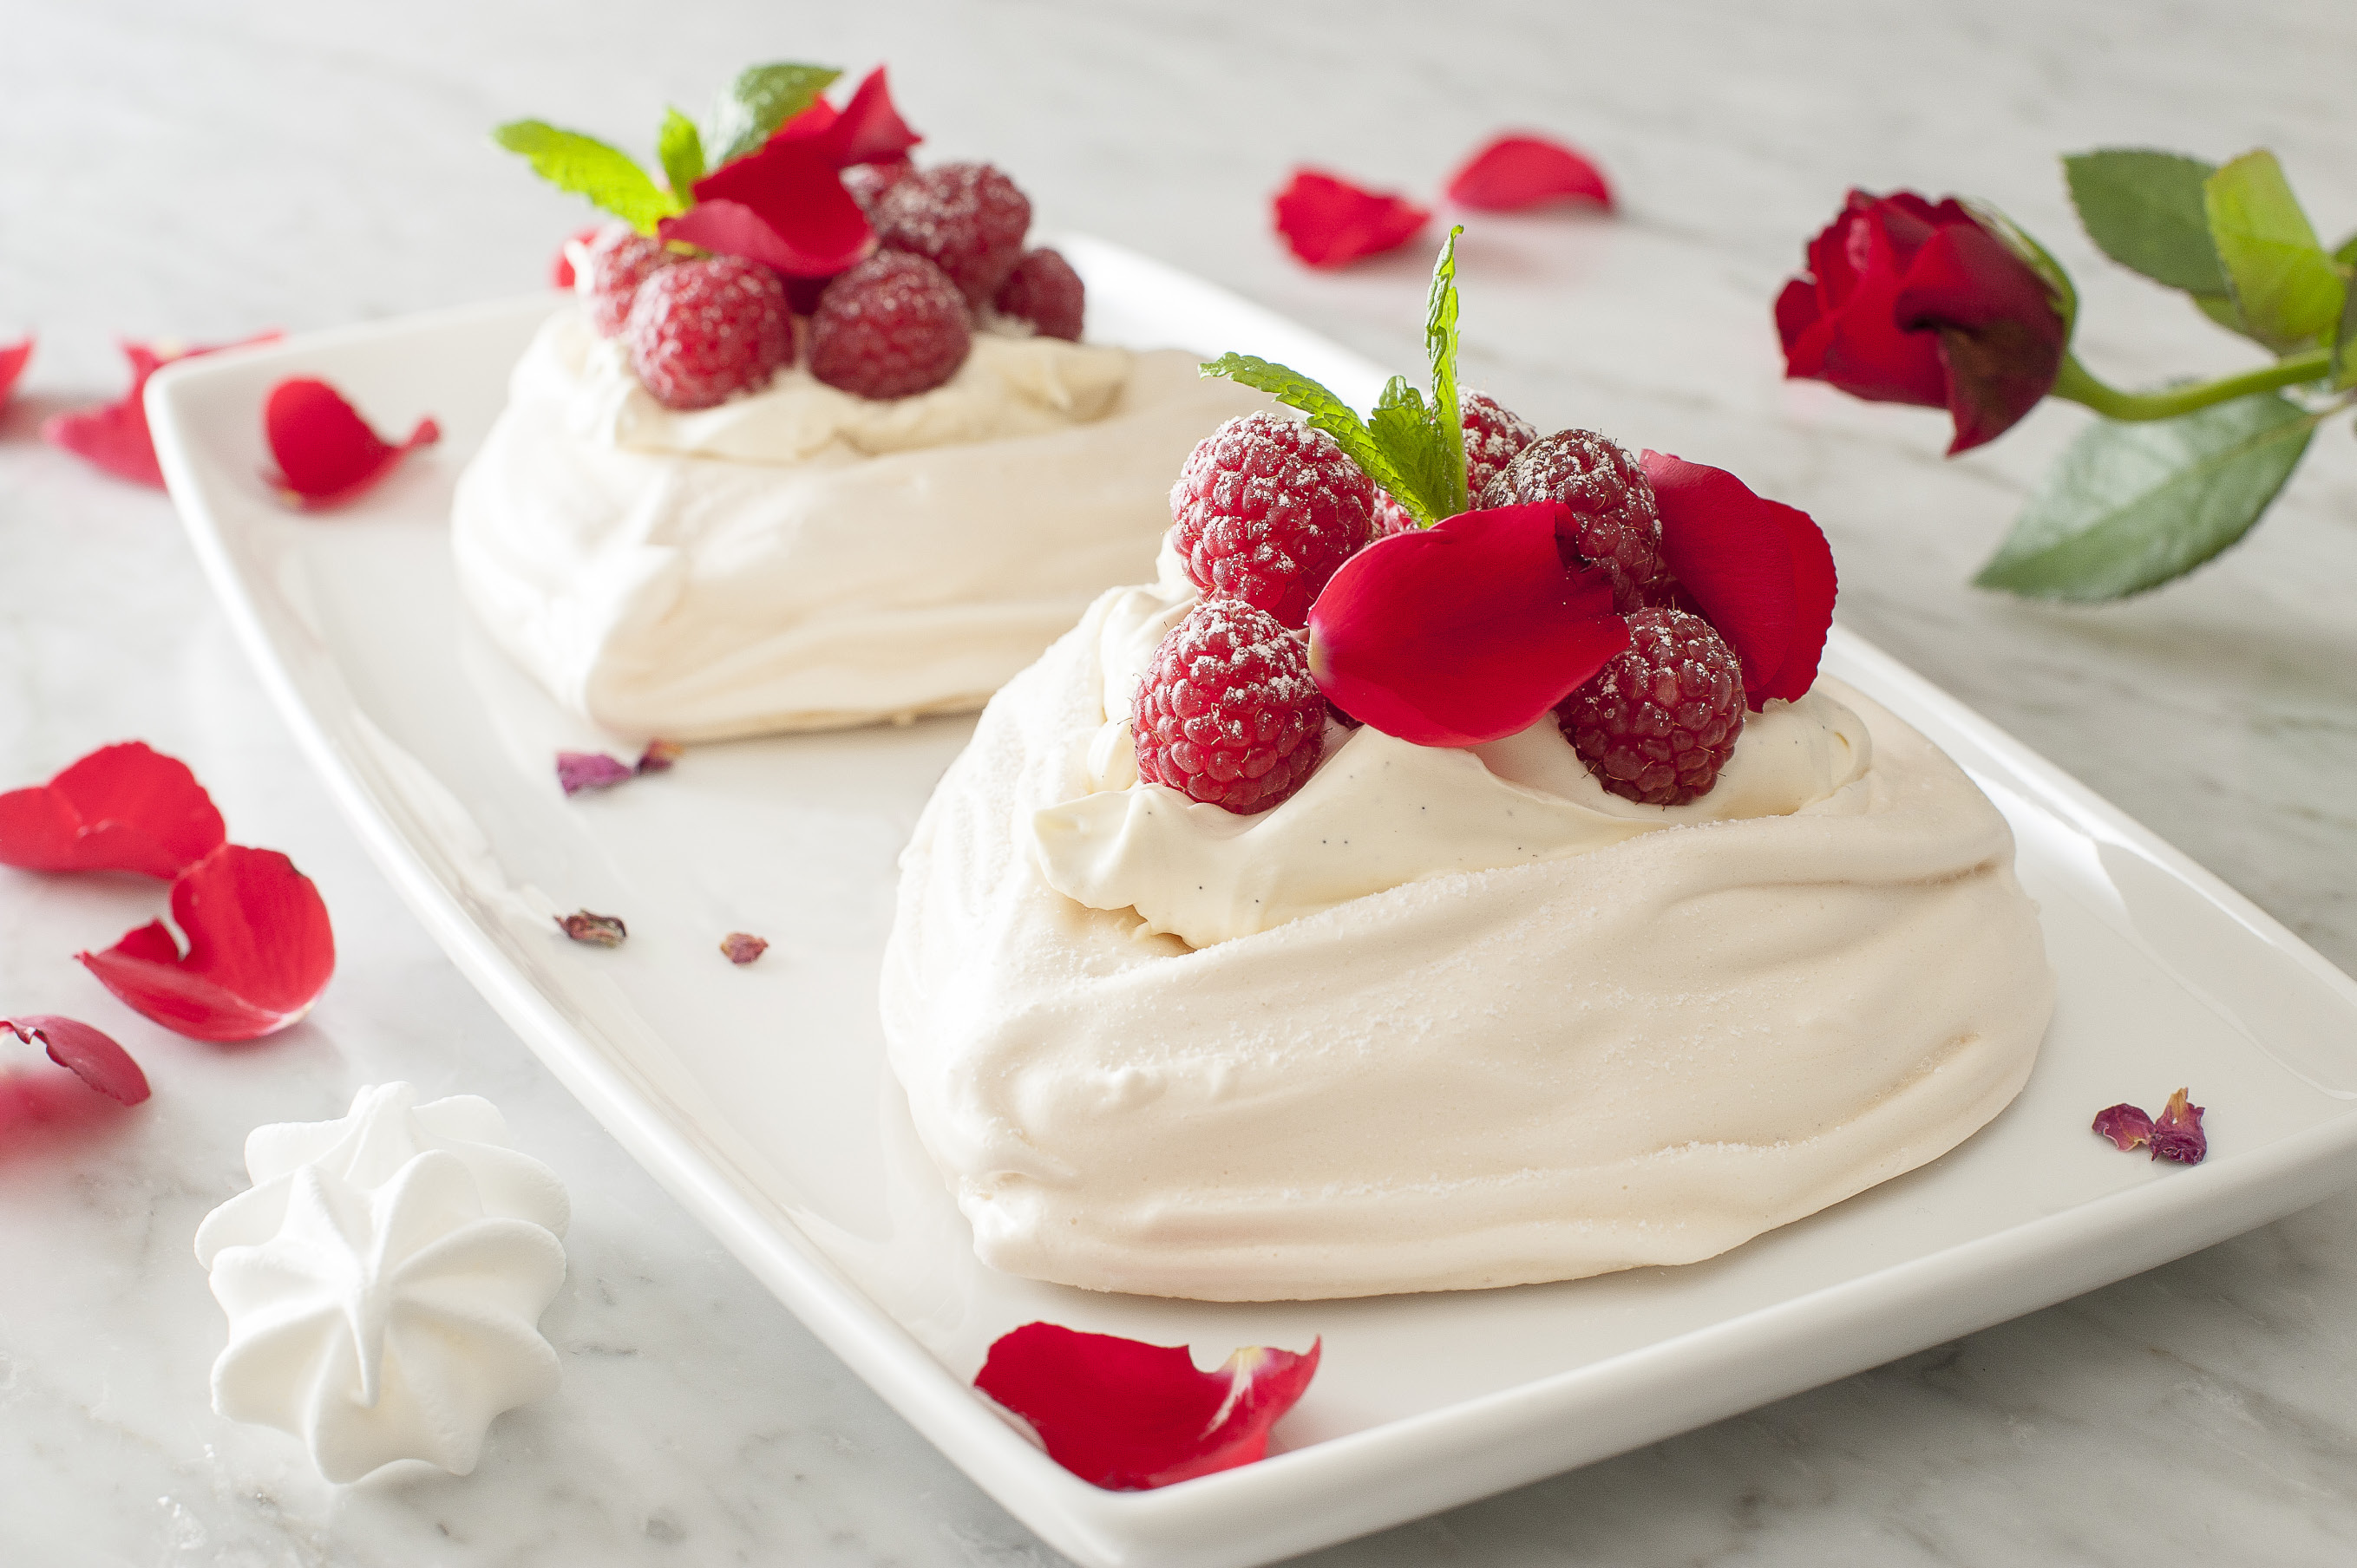 Meringue With Chantilly Cream And Raspberries Priceless Magazines